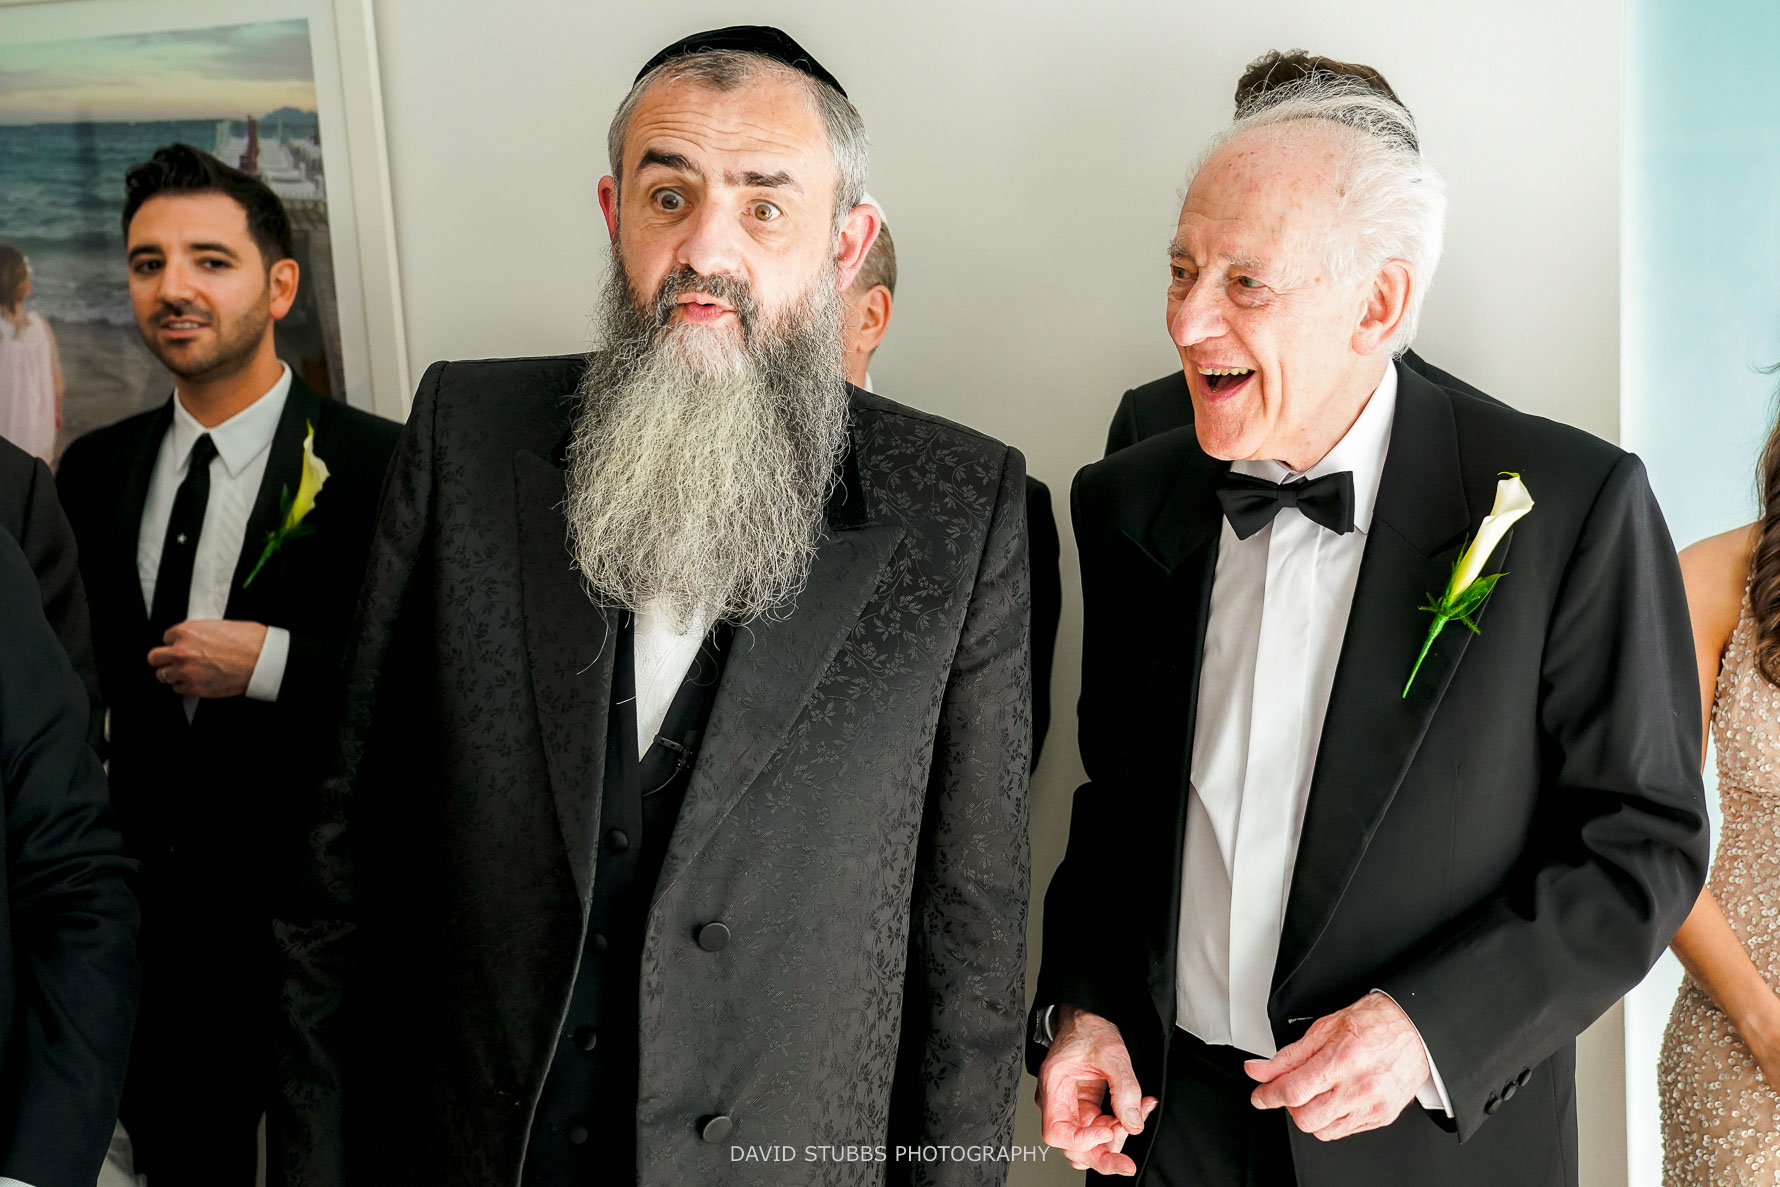 the rabbi pulling a funny face